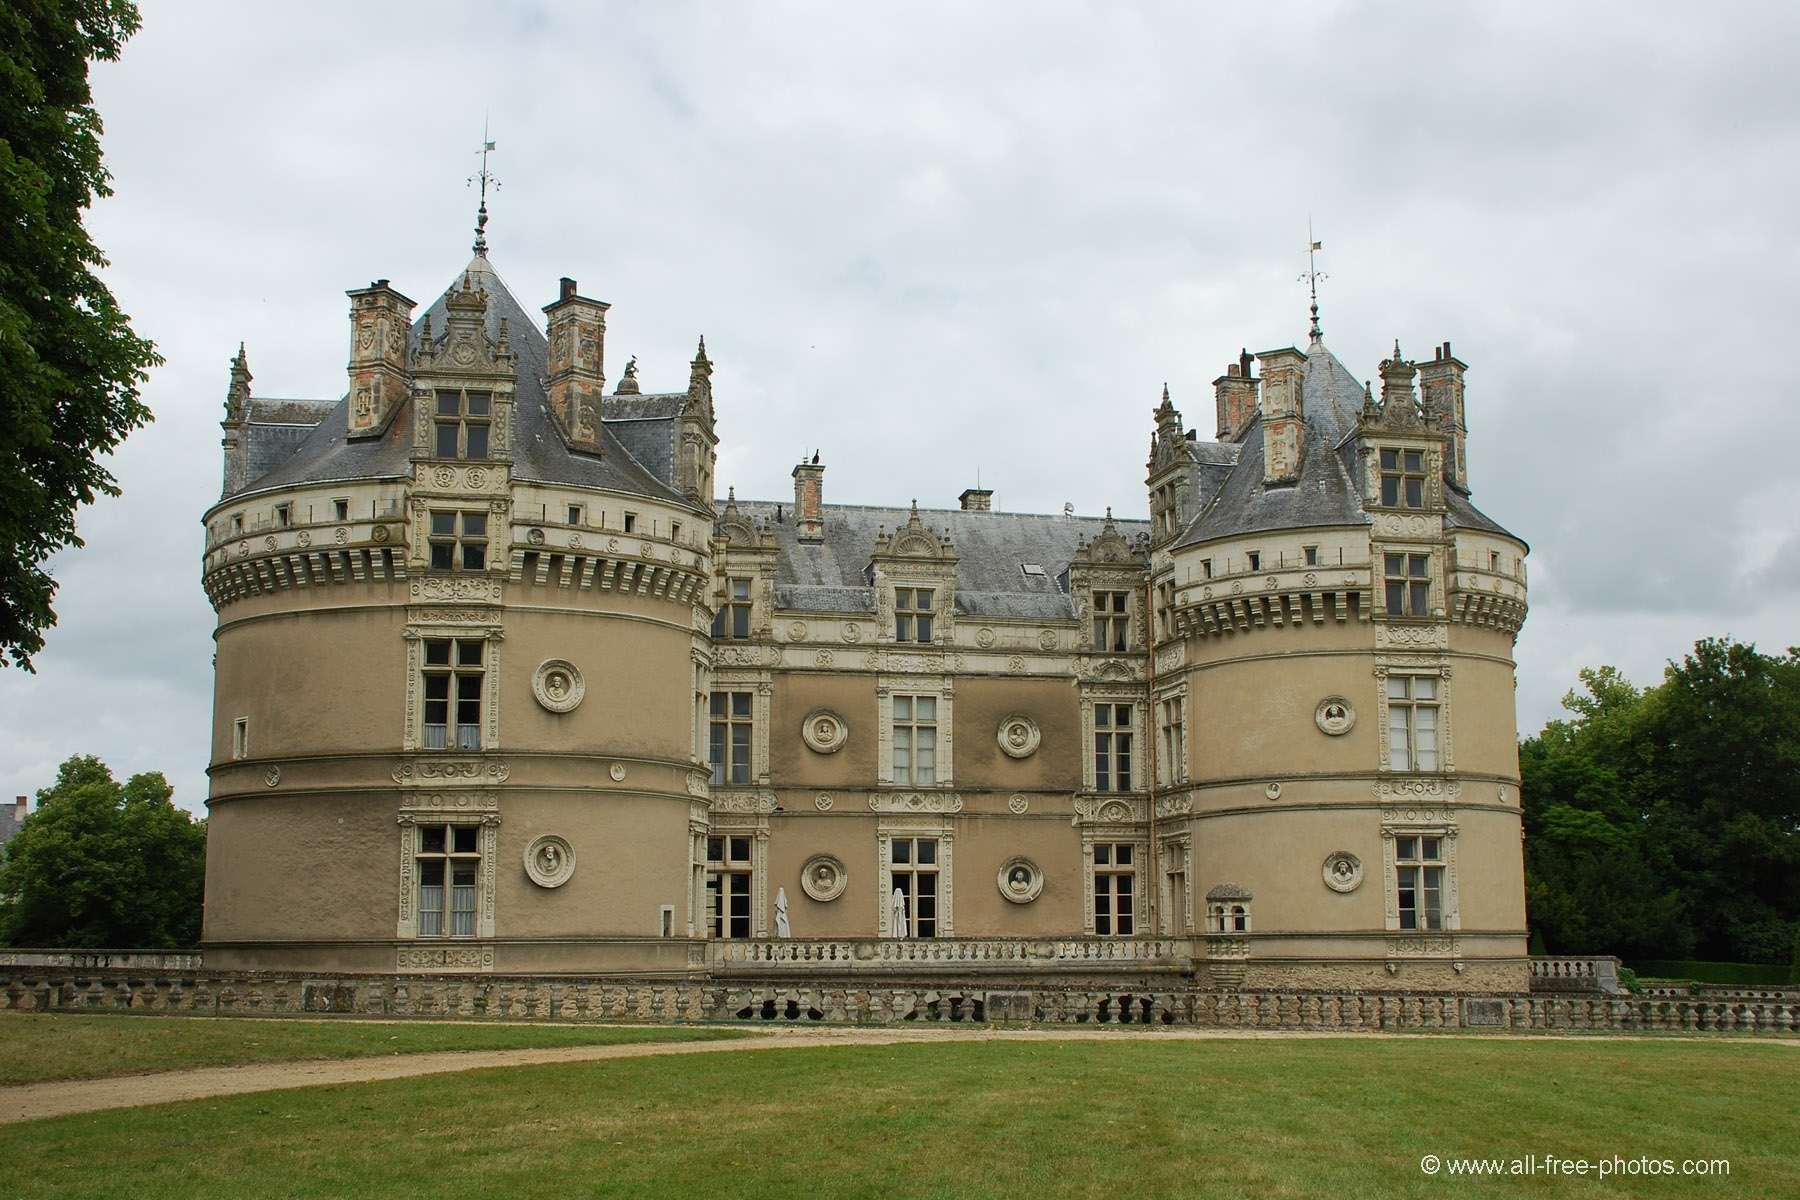 Home Galleries Castles and palaces Castles of the Loire valley Castle ...: all-free-photos.com/show/showphoto.php?idph=pi18991&lang=en